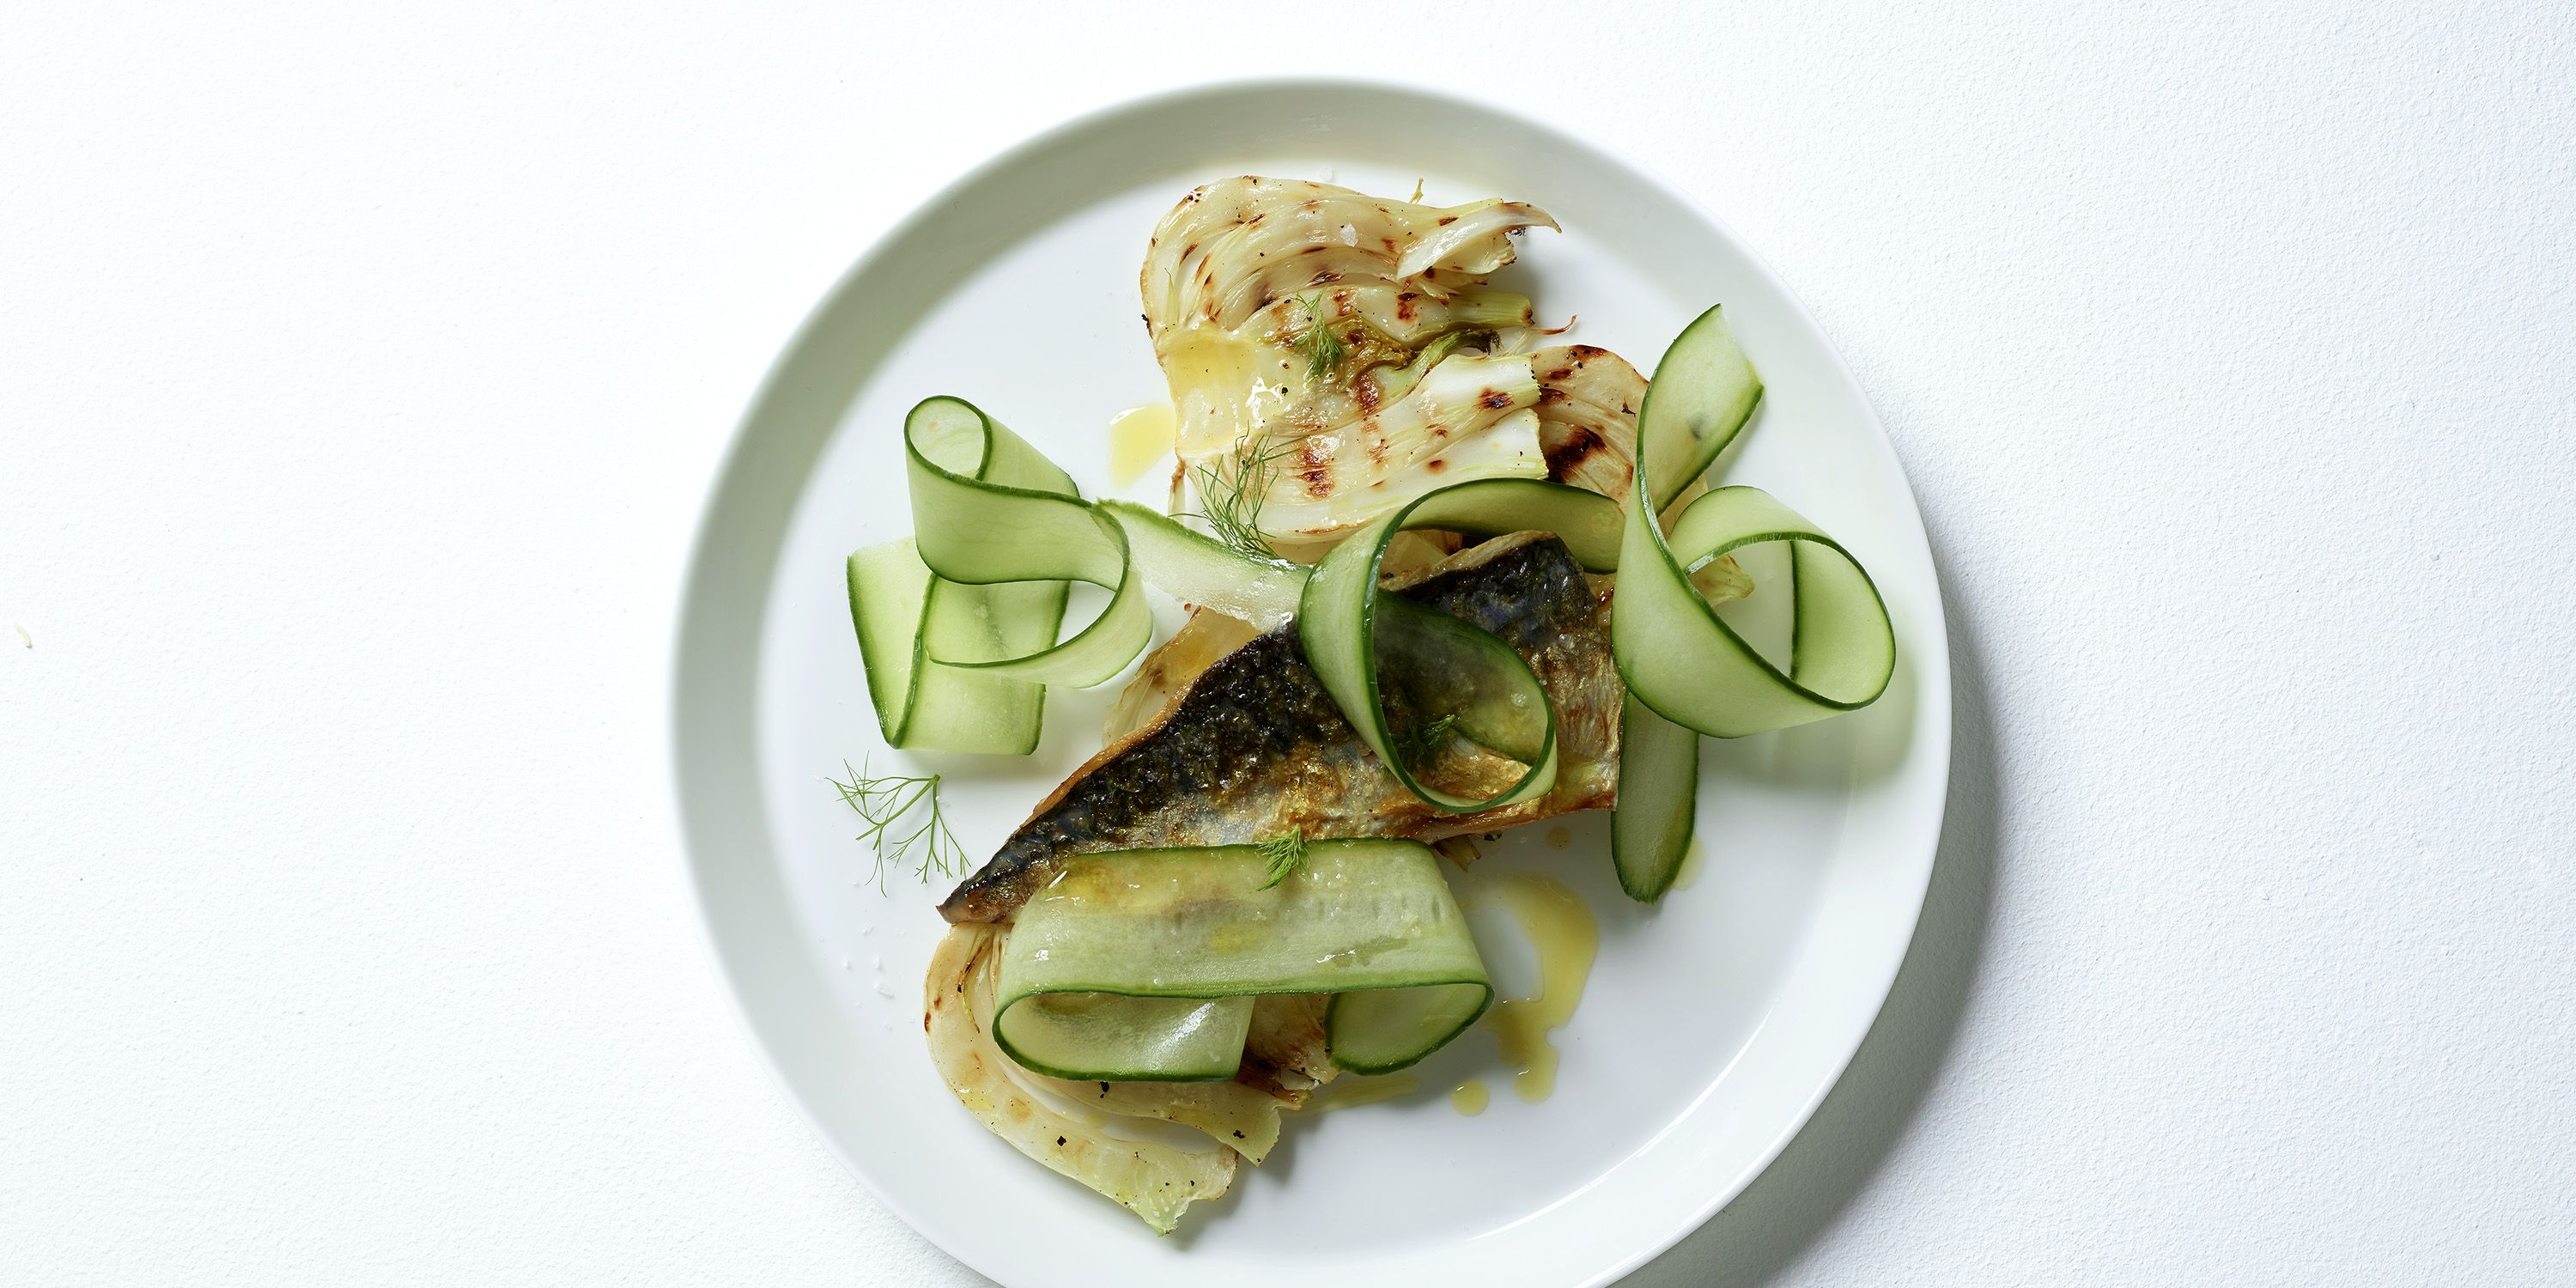 Mackerel fennel and cucumber salad